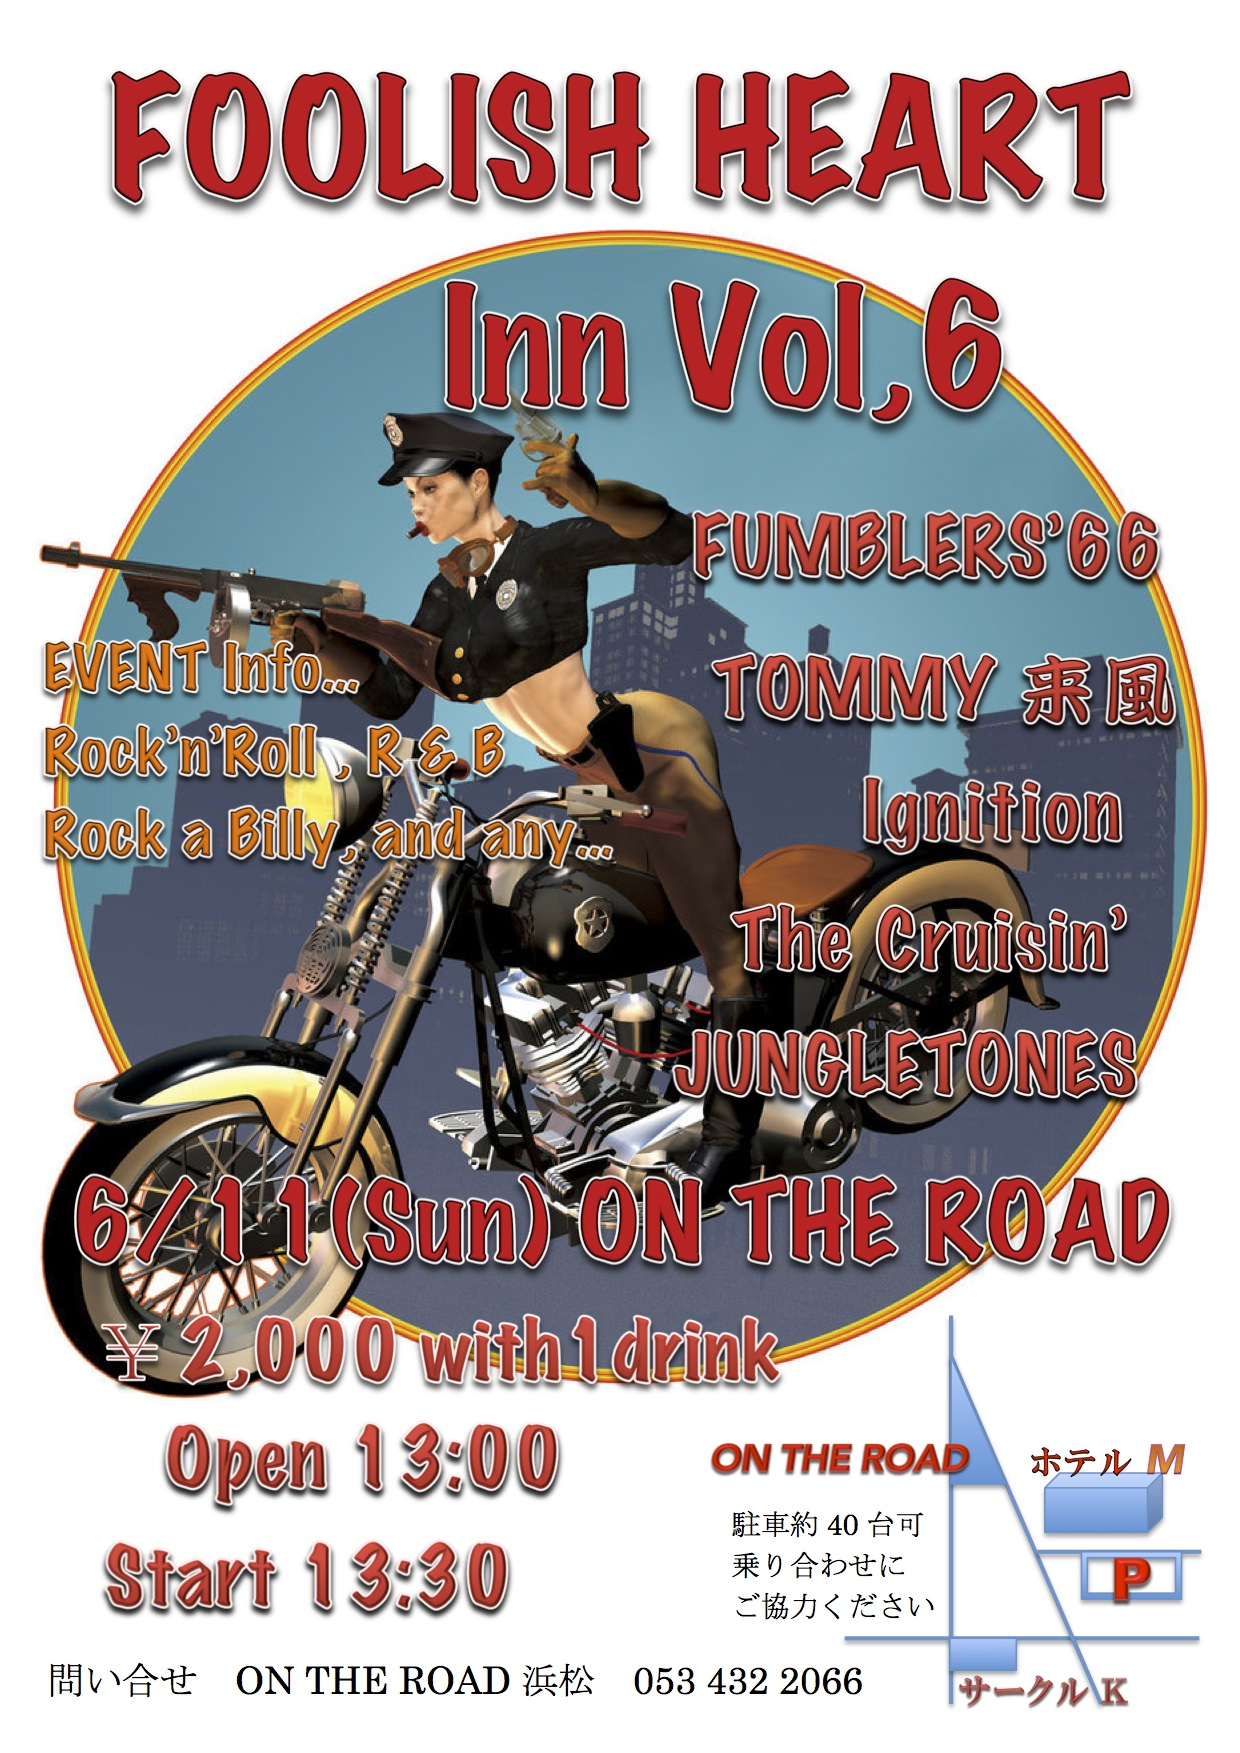 FOOLISH HEART Inn Vol.06